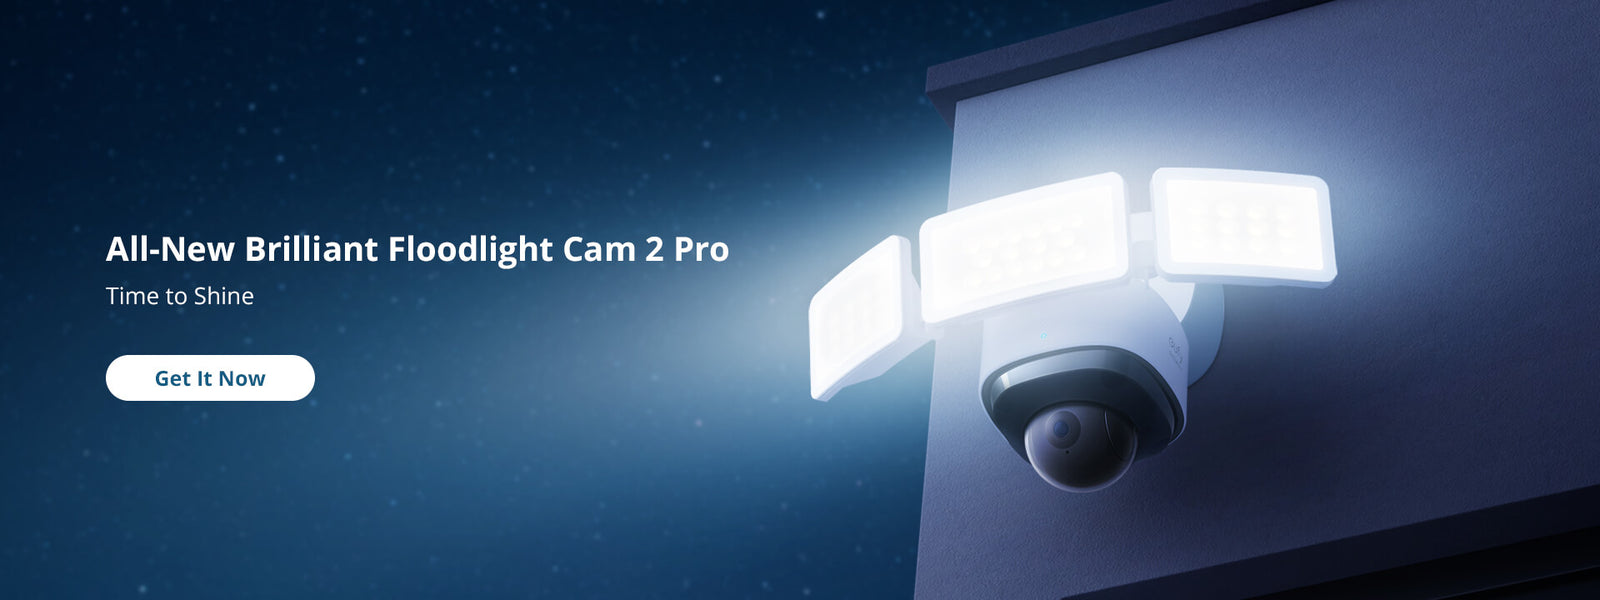 Eufy Coupon Codes - Floodlight Cam 2 Pro @ just $299.99